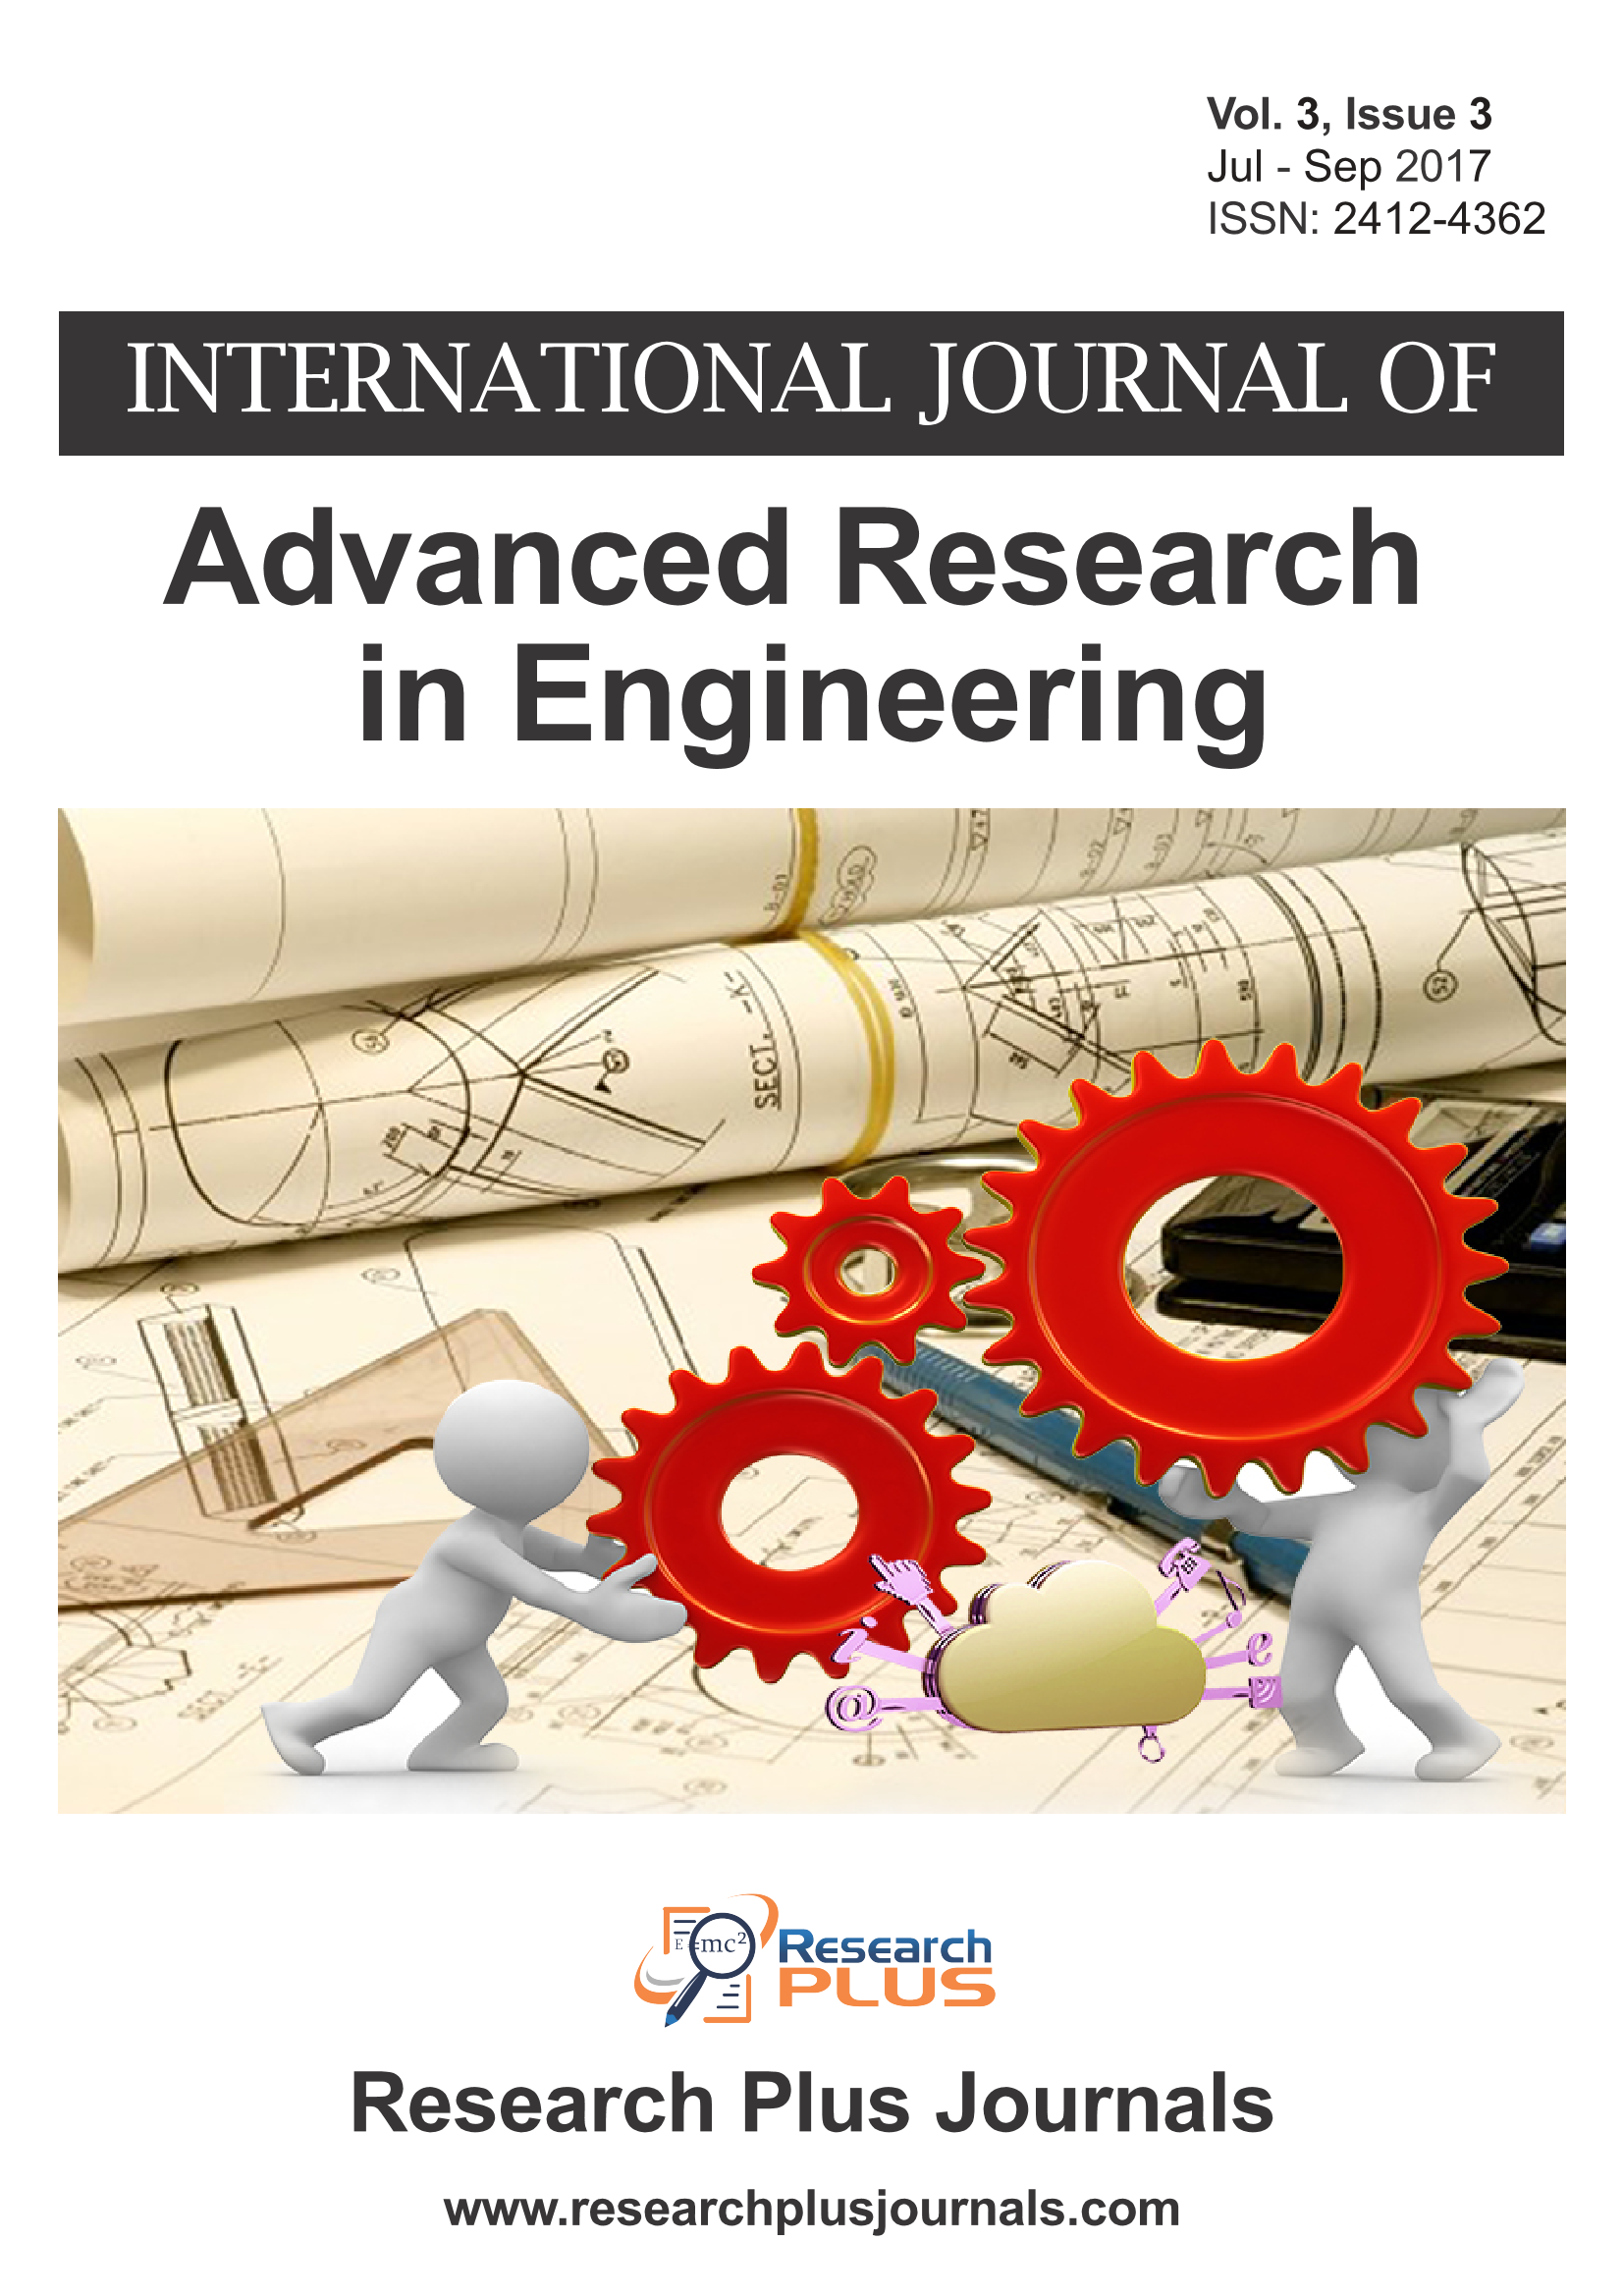 Volume 3, Issue 3, International Journal of Advanced Research in Engineering (IJARE)  (Online ISSN 2412-4362)